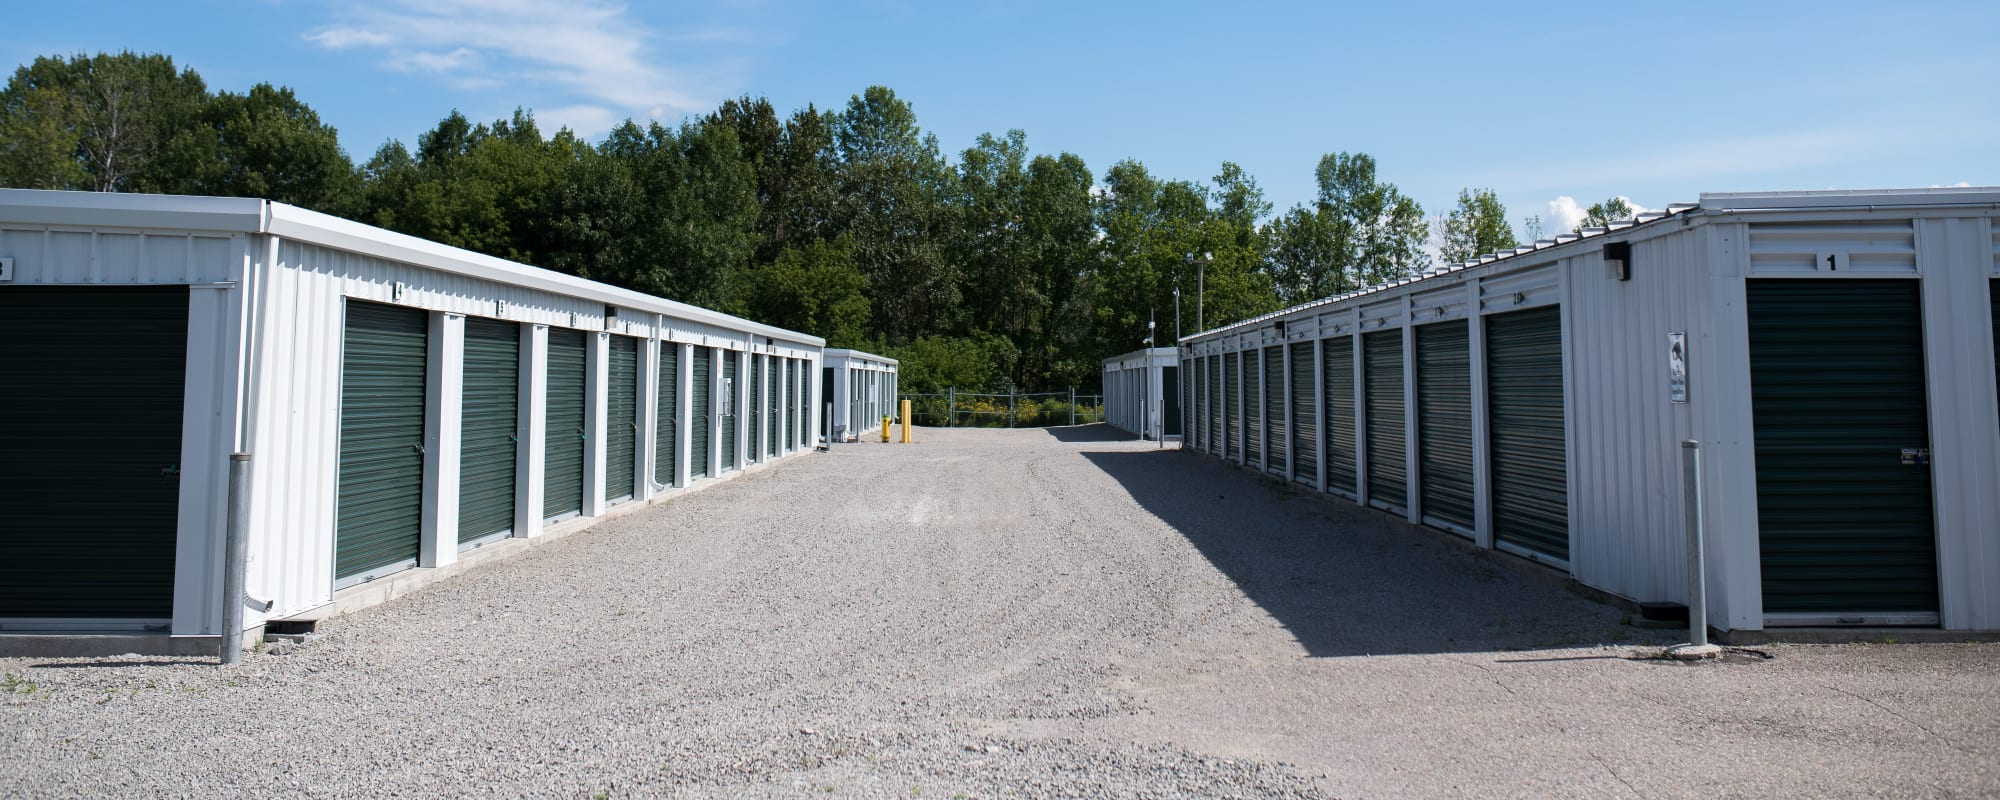 Blog page for Apple Self Storage - Midland in Midland, Ontario